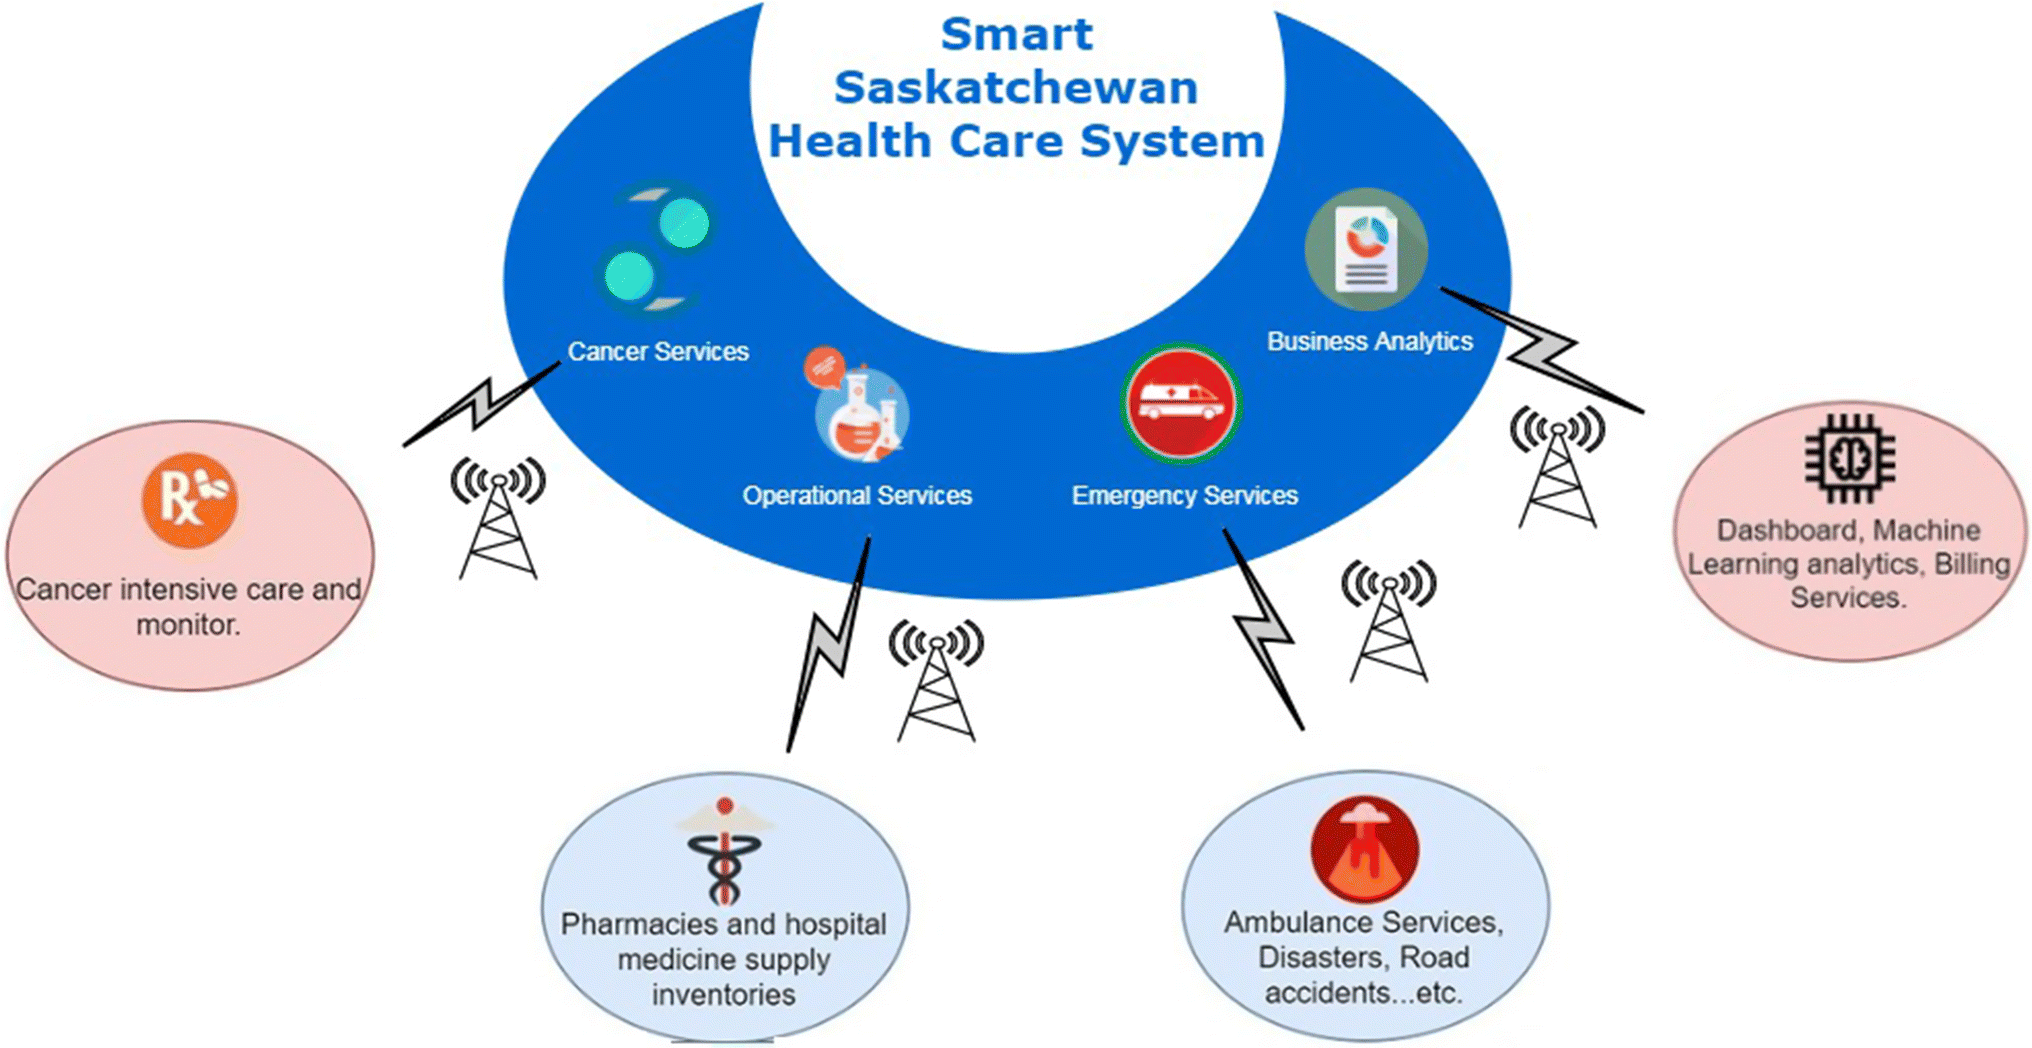 Implementing IoT/WSN based smart Saskatchewan Healthcare